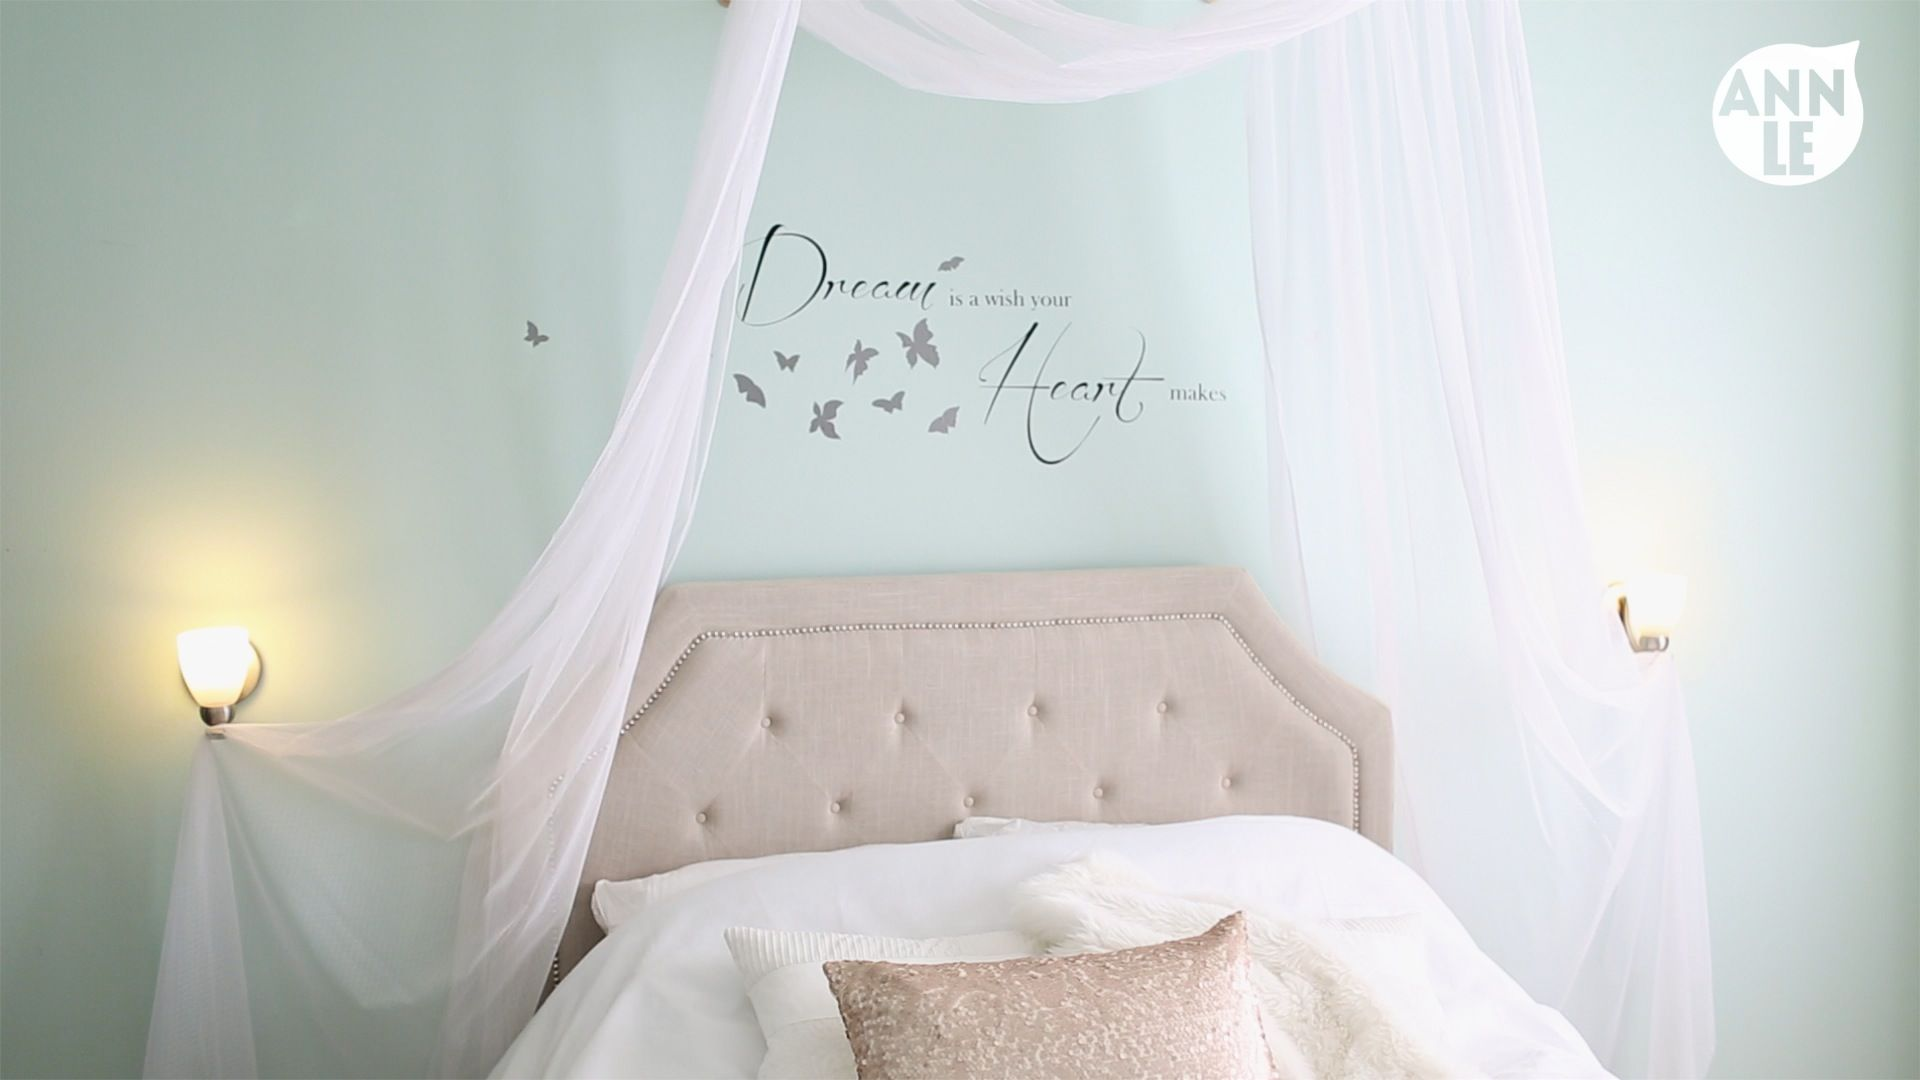 DIY Romantic Bed Canopy | Ann Le Style : diy canopies for beds - memphite.com